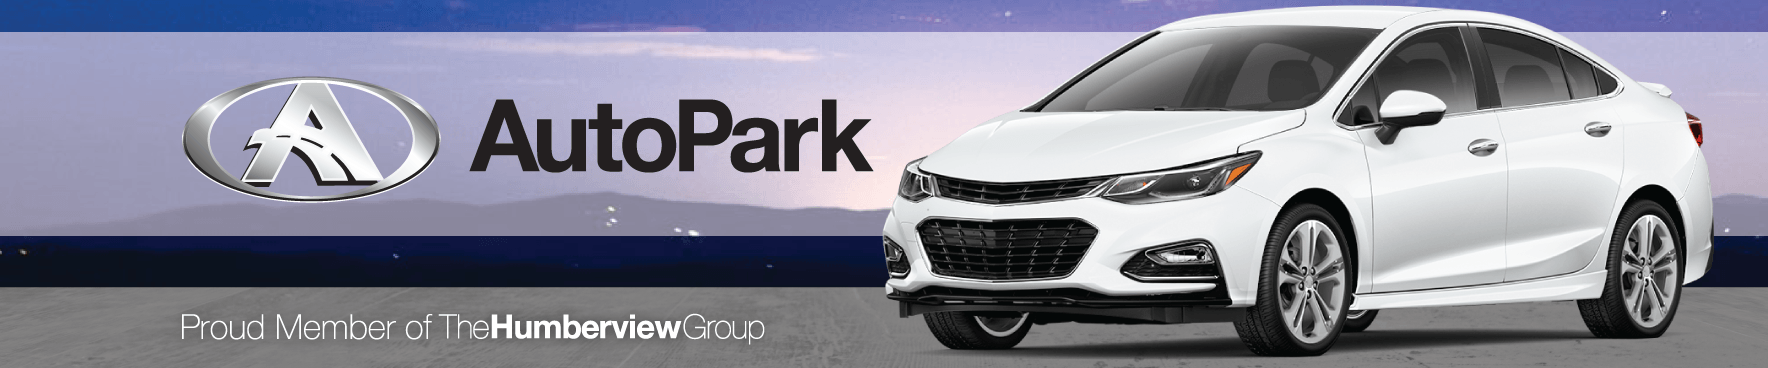 AutoPark Mississauga - Largest Used Car Network in Ontario